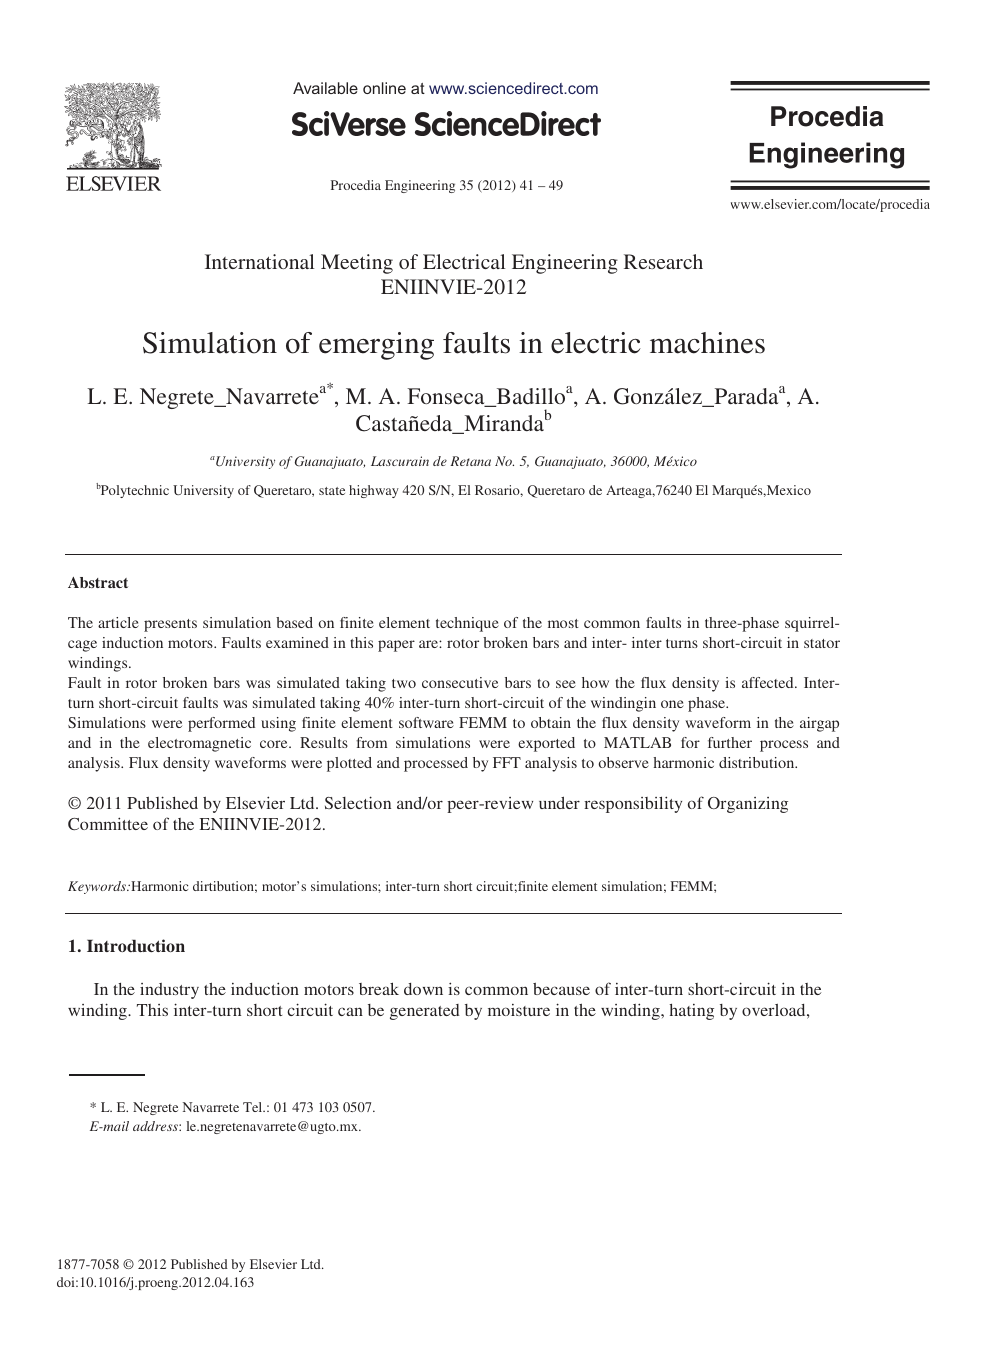 Simulation of emerging faults in electric machines – topic of